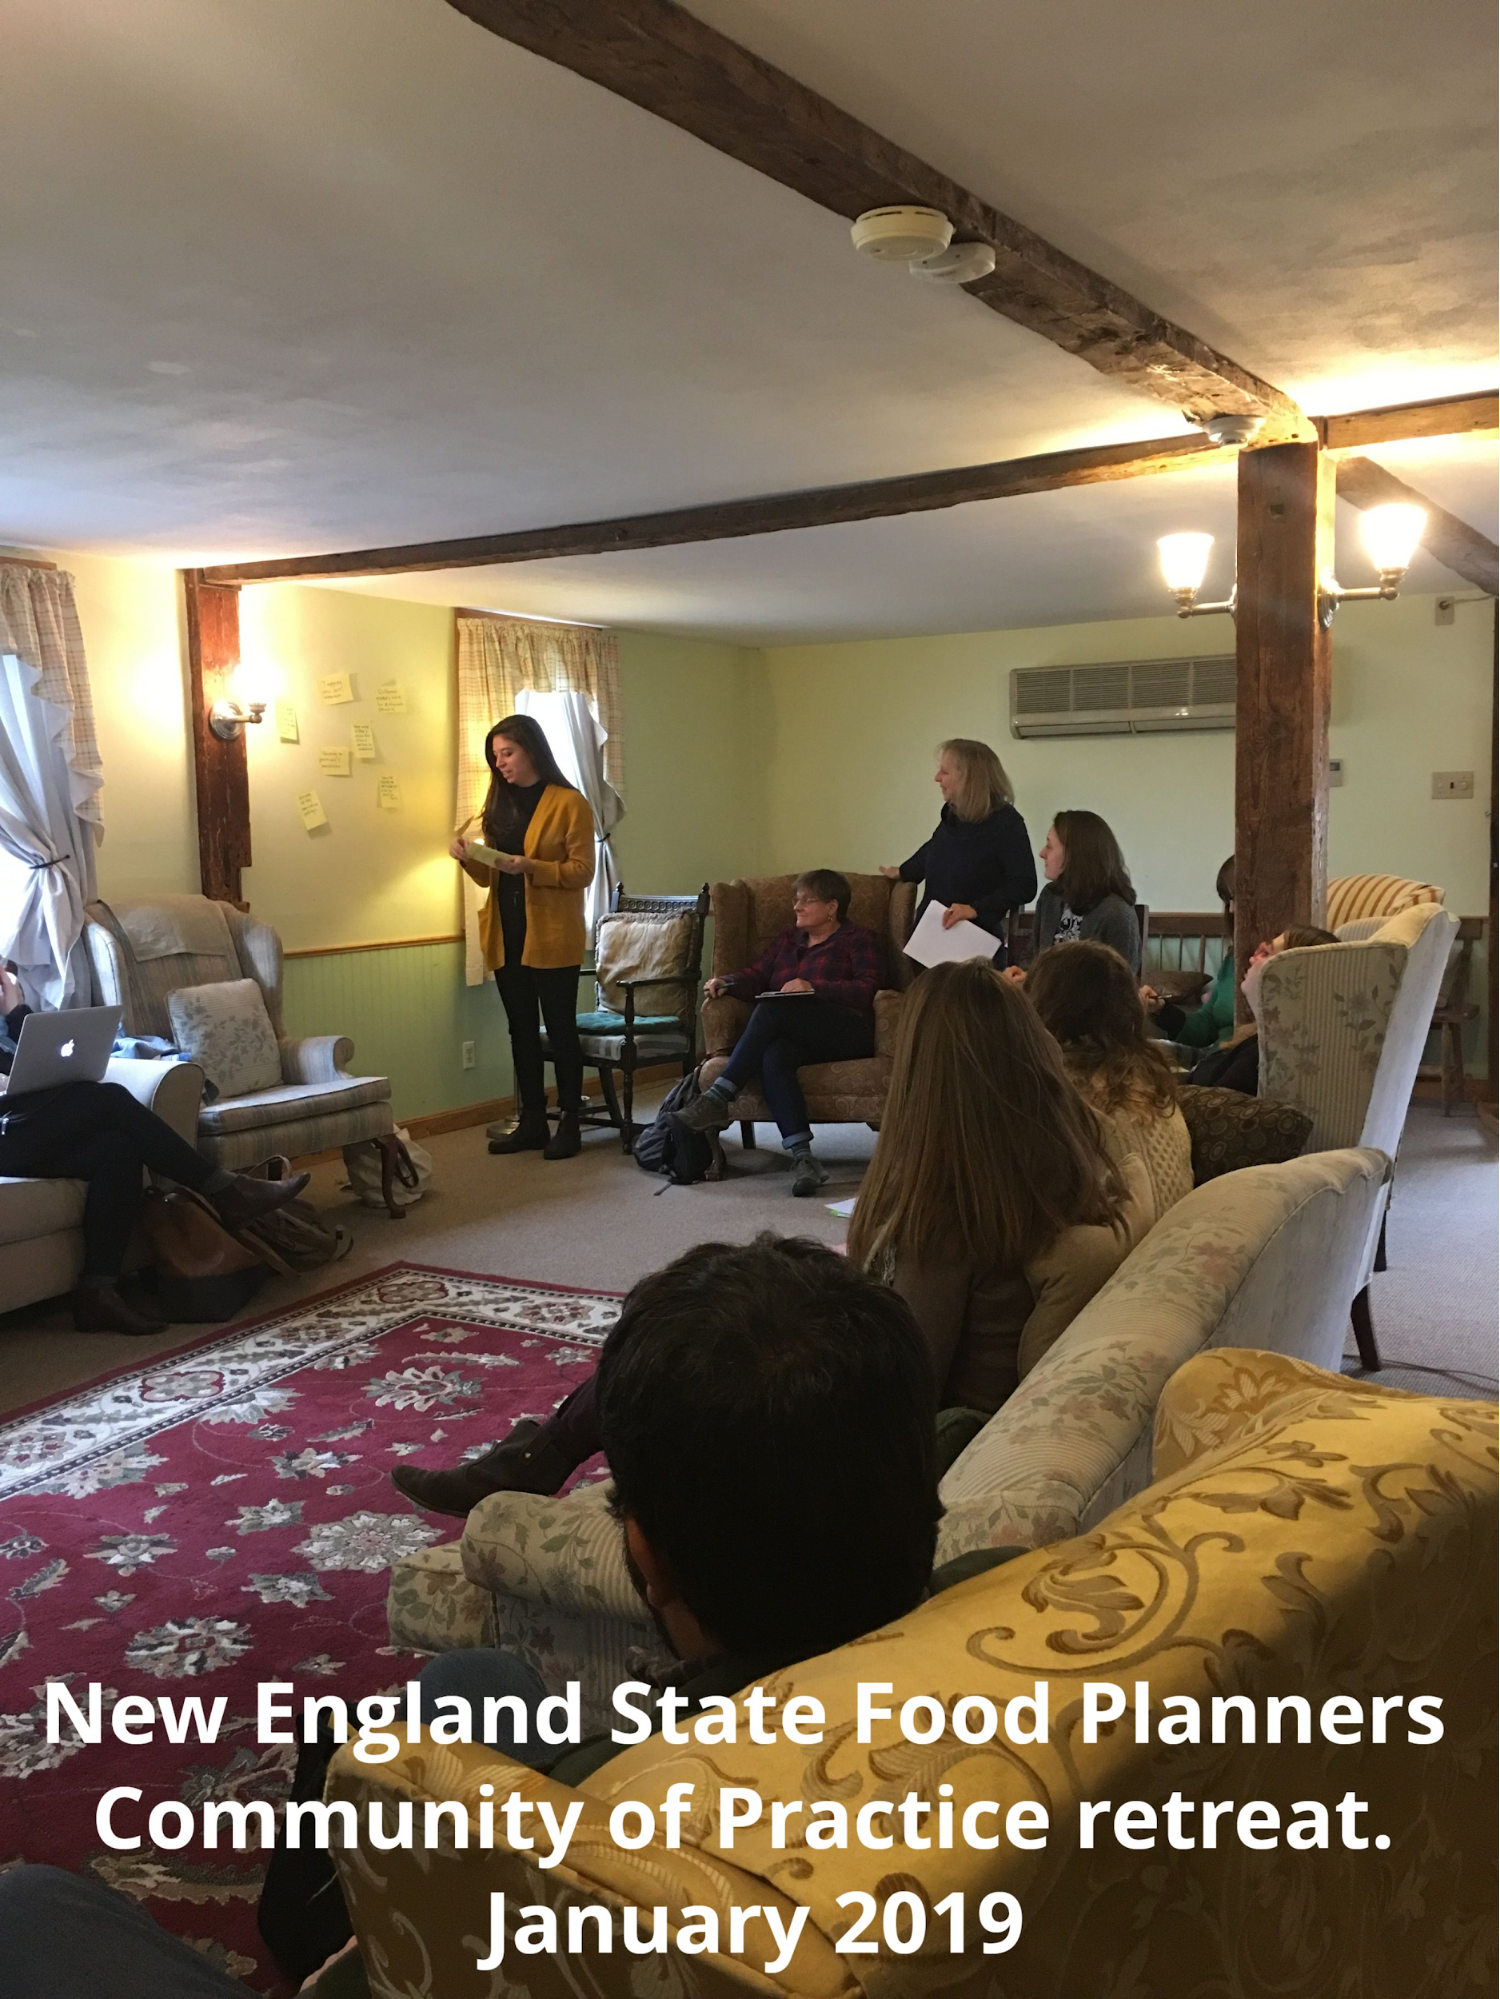 New England State Food Planners Community of Practice retreat